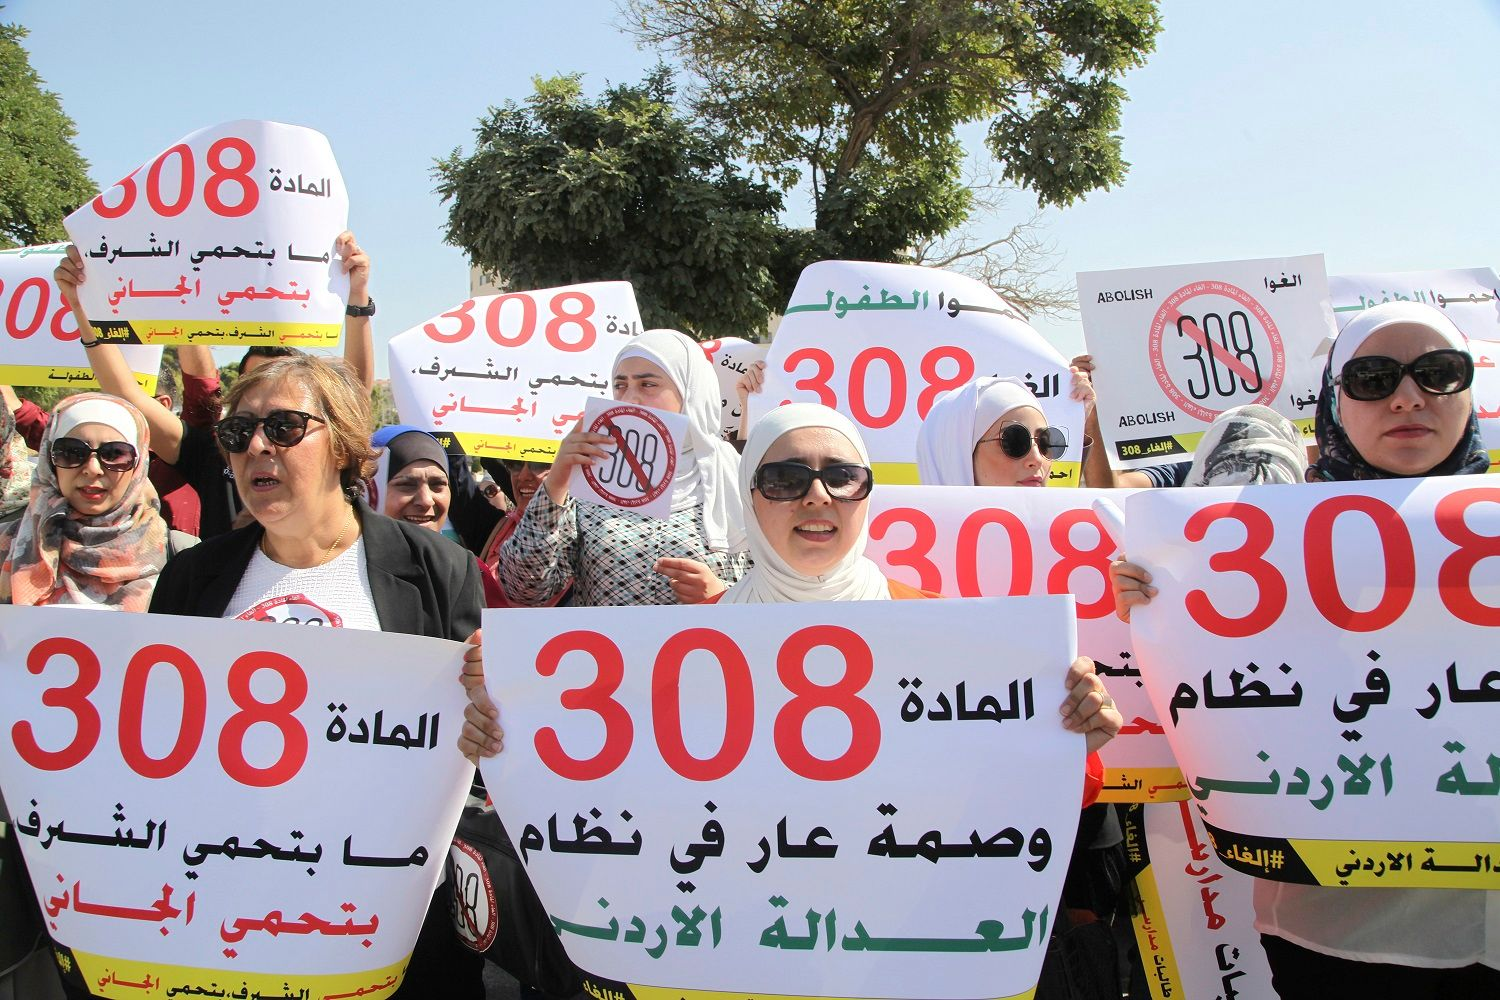 Jordan repeals law allowing rapists to marry victims